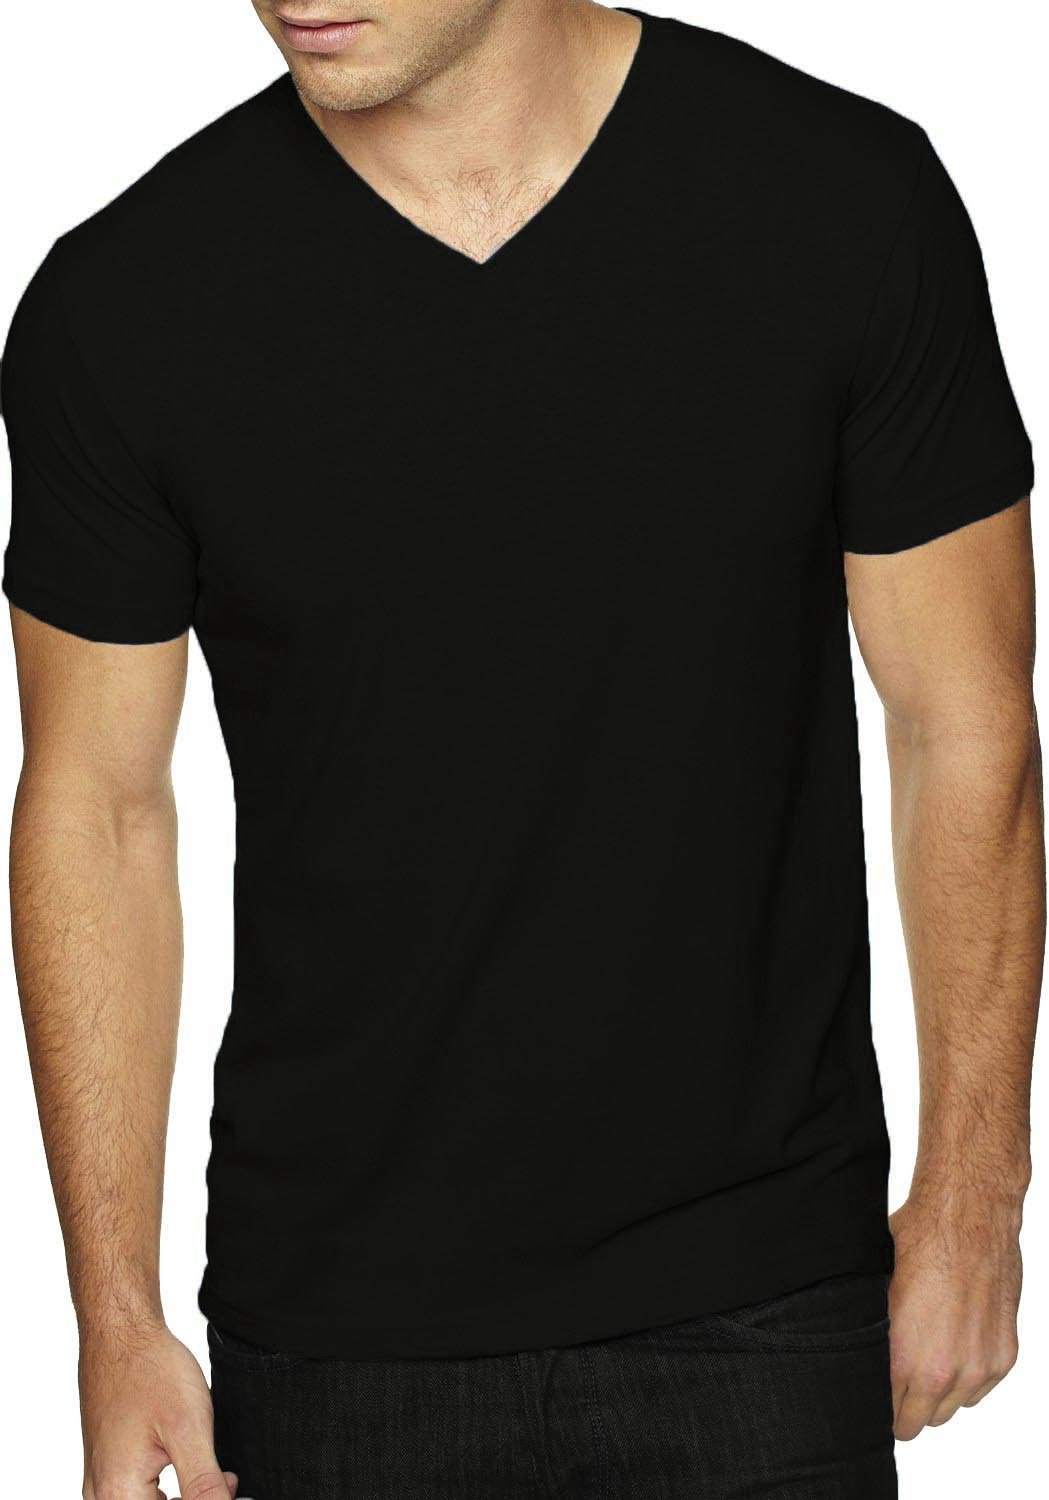 Hat and Beyond Mens Casual V Neck Tee Short Sleeve T-Shirts (Large, Black)